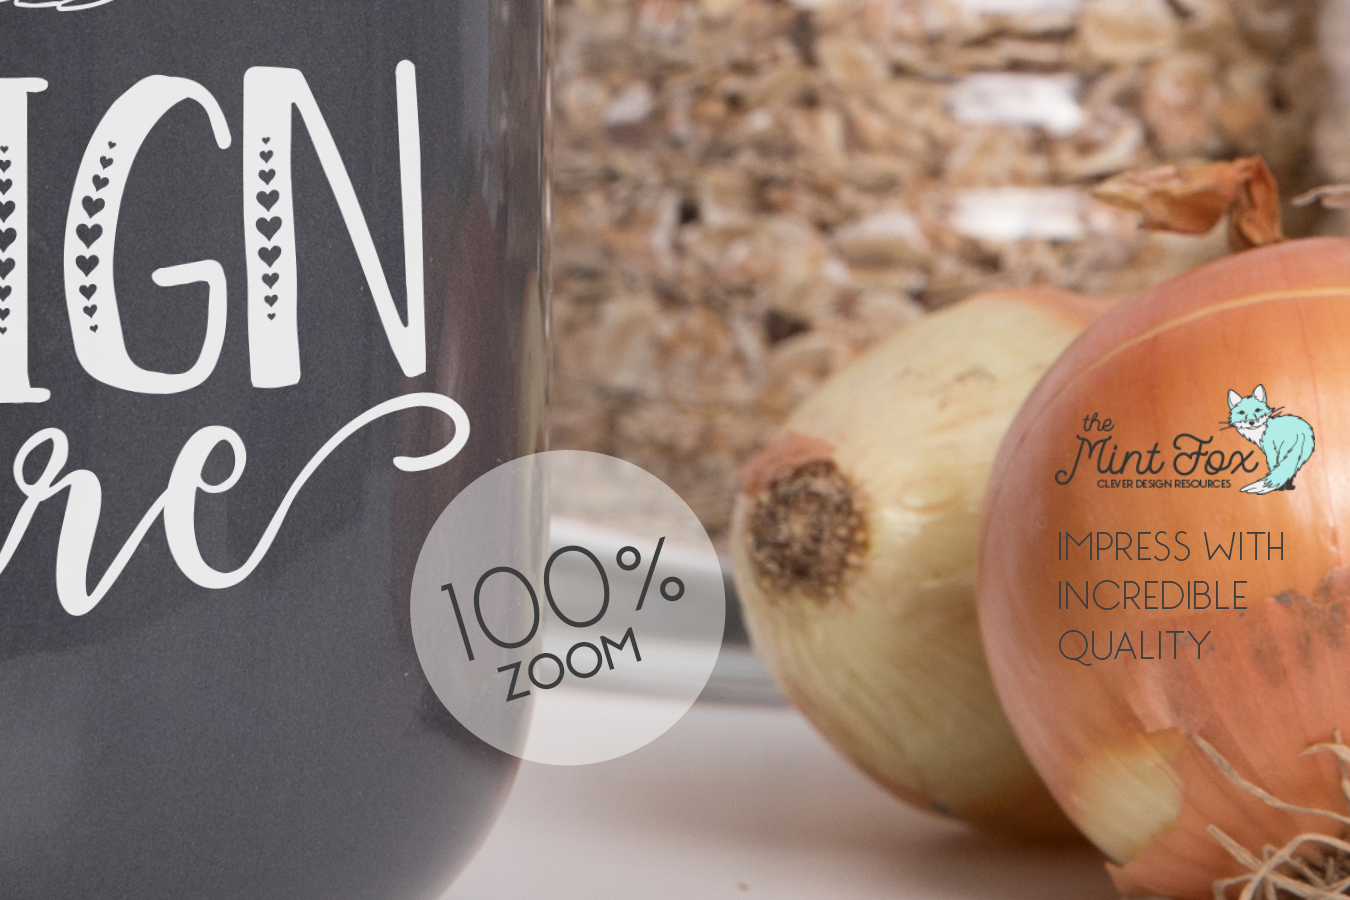 Kitchen Jar Mockup with Onions | PSD & JPG Mockup example image 2